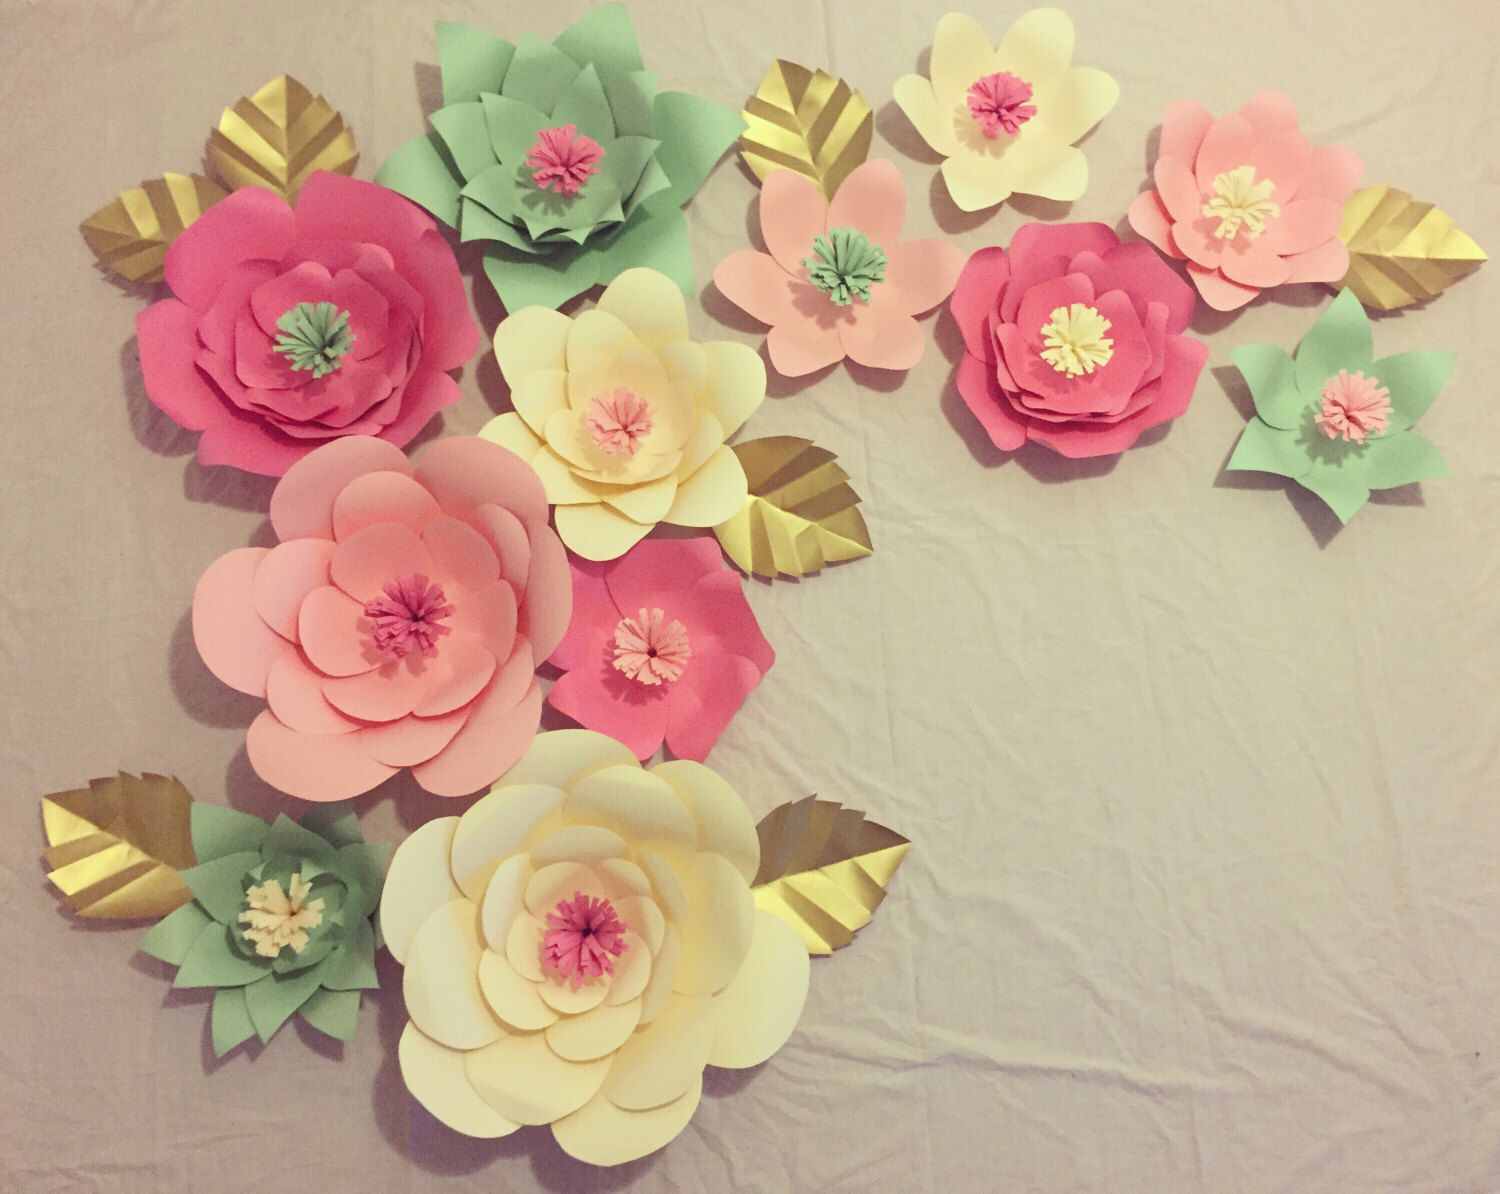 Large Paper Flowers , Babyshower Decorations , Gender Reveal ,Event decor , Home Decor ,Weddings , set of 12 flowers , customizable by PaperGardenUSA on Etsy https://www.etsy.com/listing/472082944/large-paper-flowers-babyshower